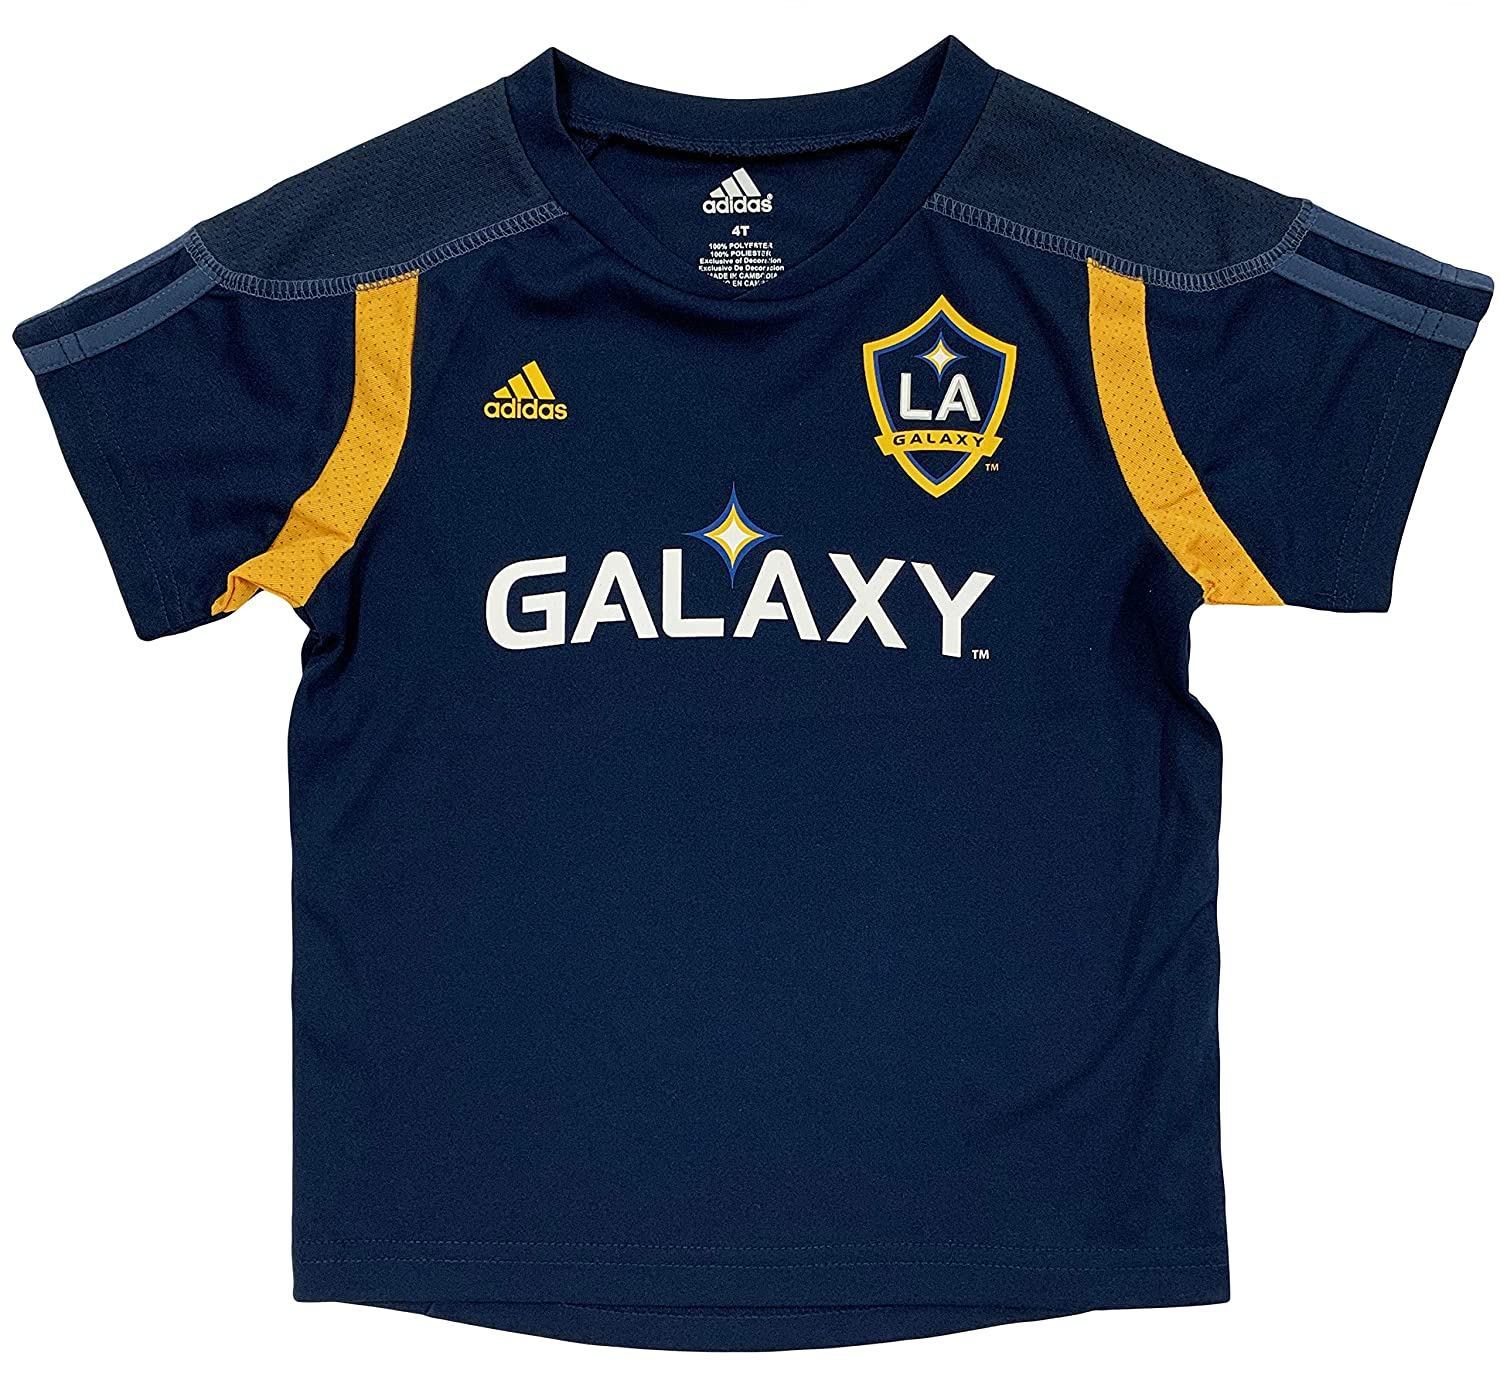 on sale 9aed0 79131 LA Galaxy Toddler Navy Secondary Replica Jersey